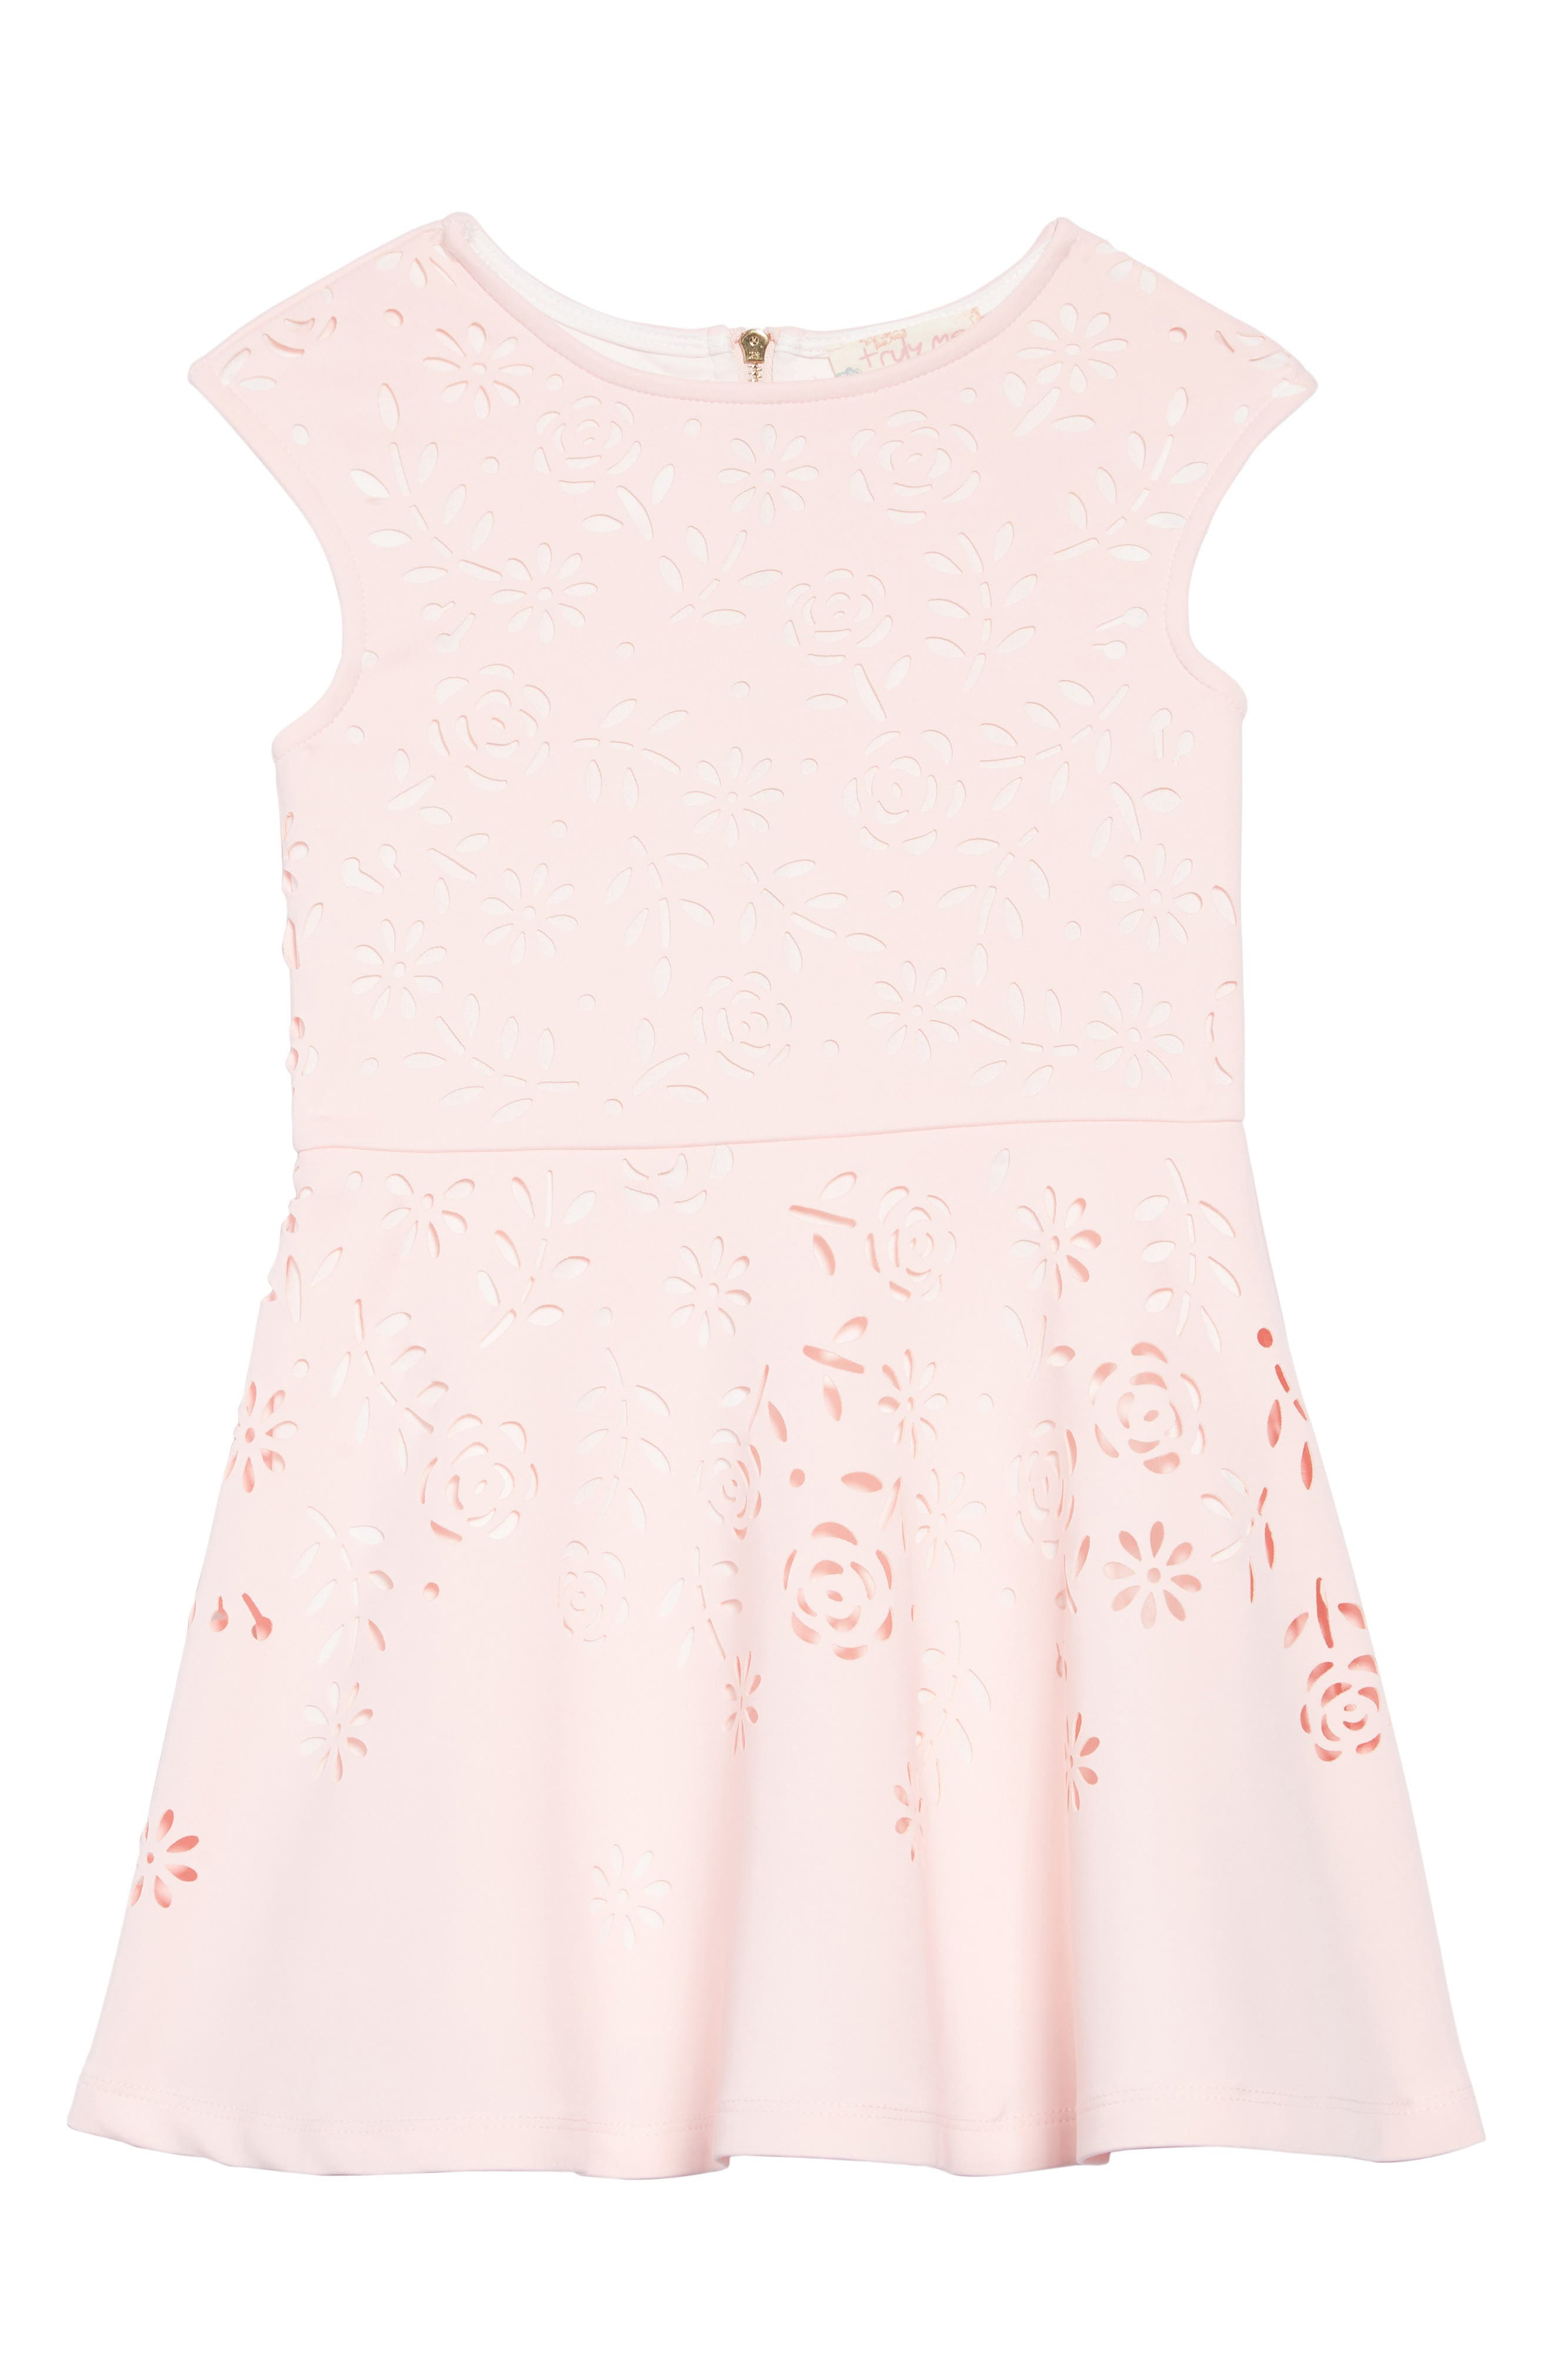 TRULY ME,                             Laser Cut Floral Fit & Flare Dress,                             Main thumbnail 1, color,                             PINK-WHITE